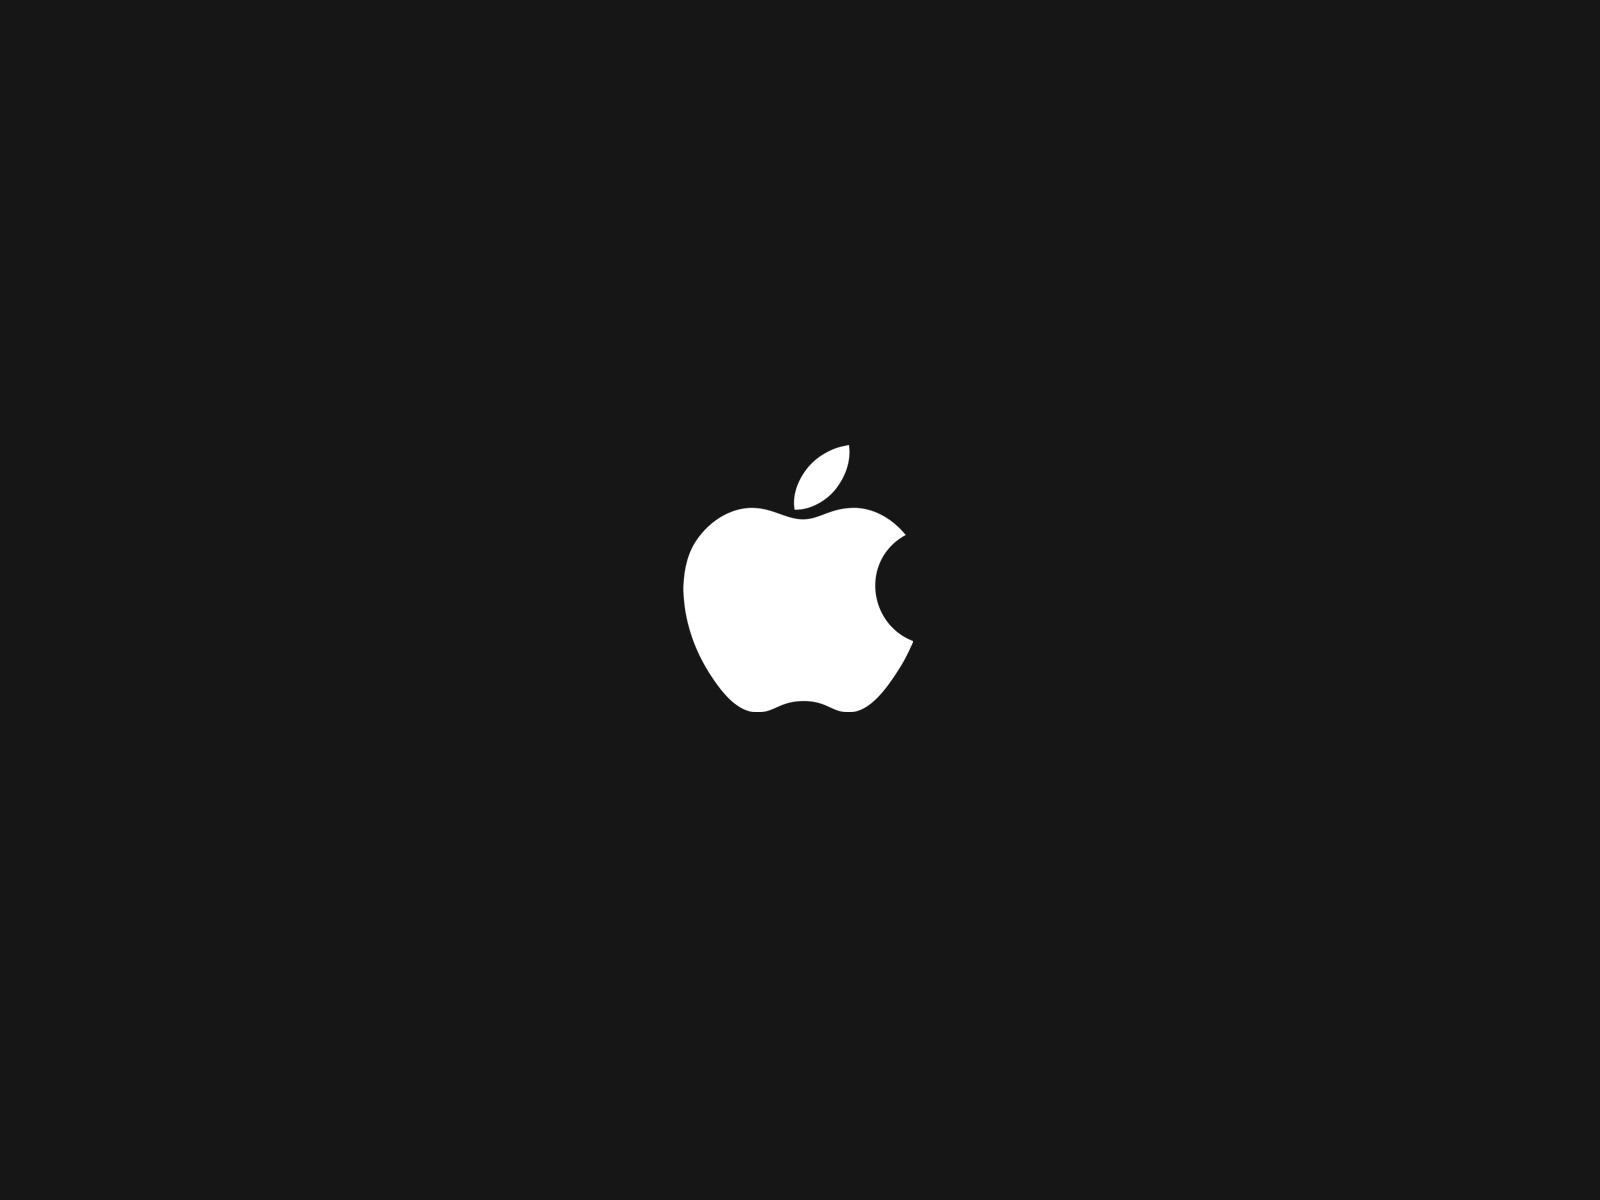 Apple Logo Wallpapers HD A7